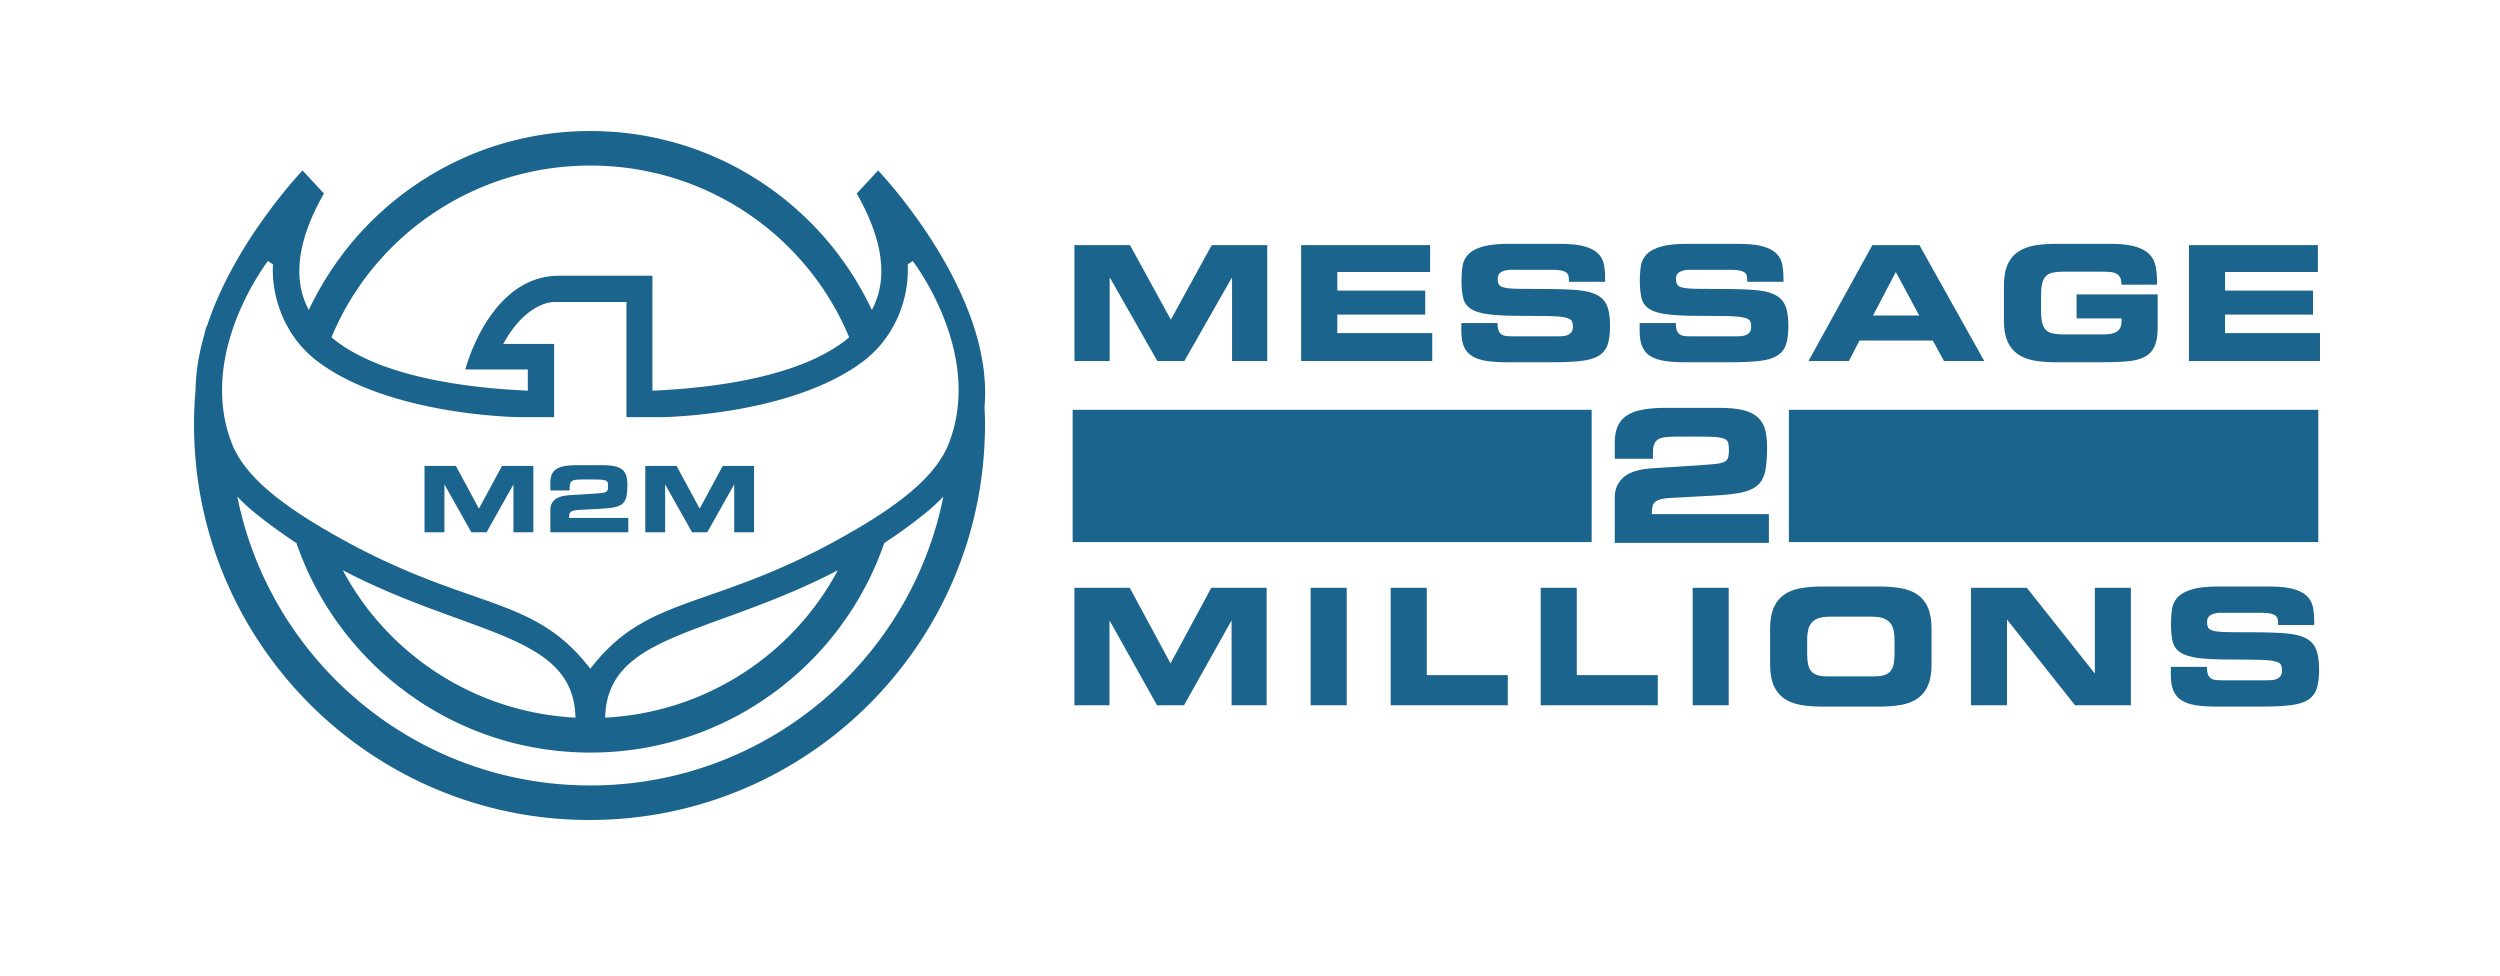 Message 2 Millions logo